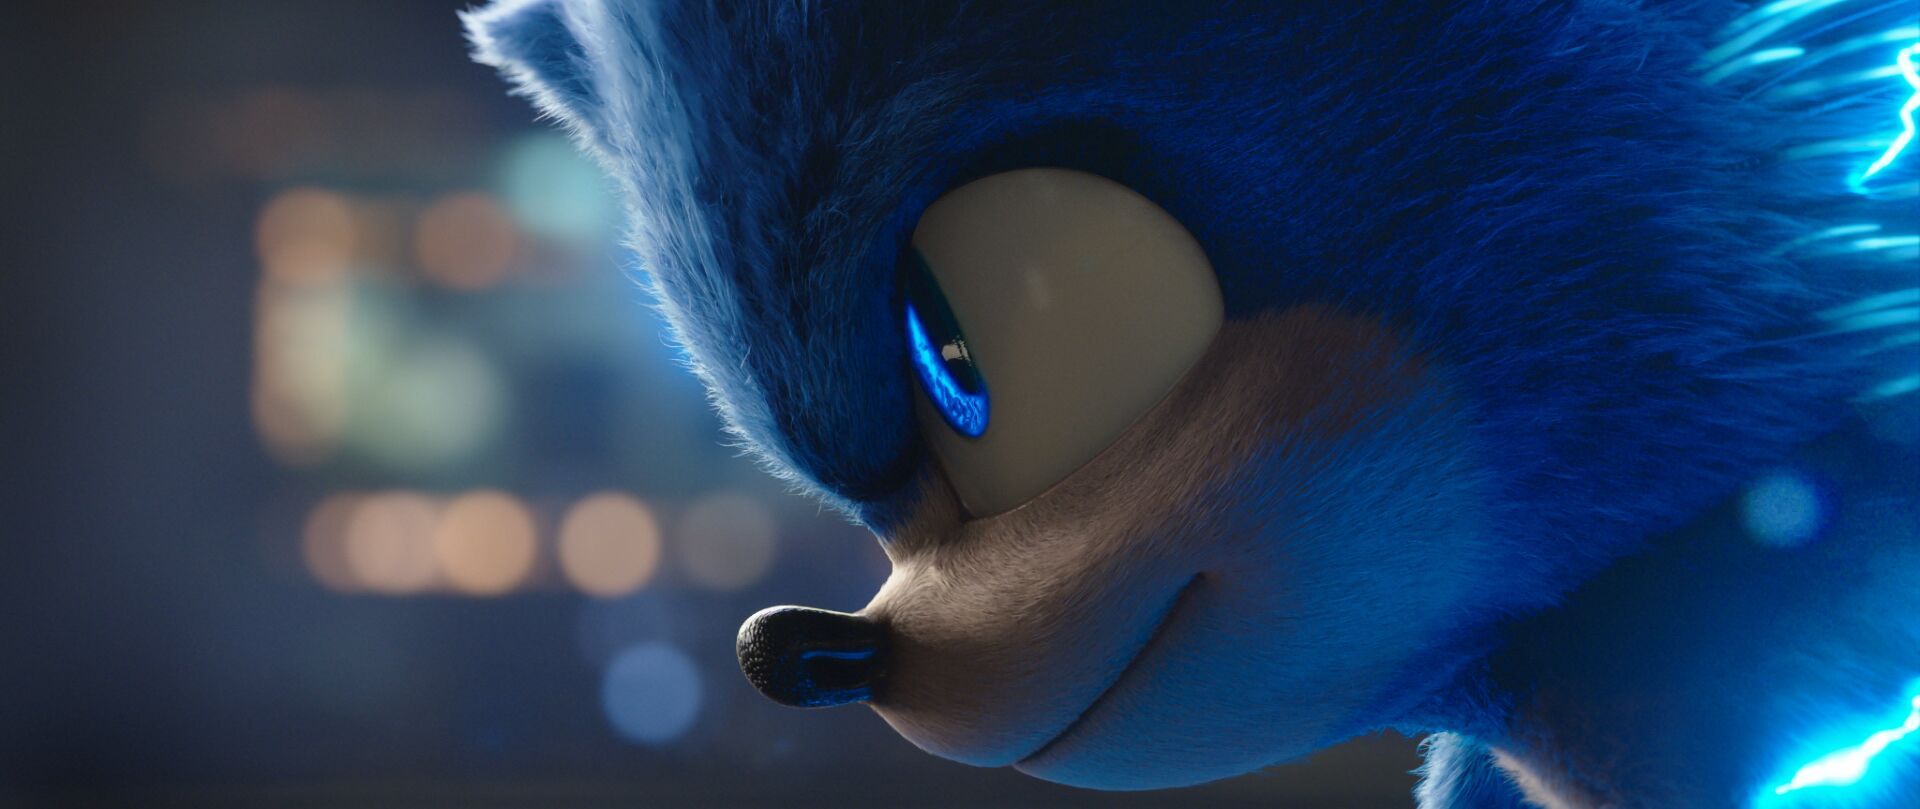 Sonic the Hedgehog film is a fun, charming big-screen debut for the Blue Blur